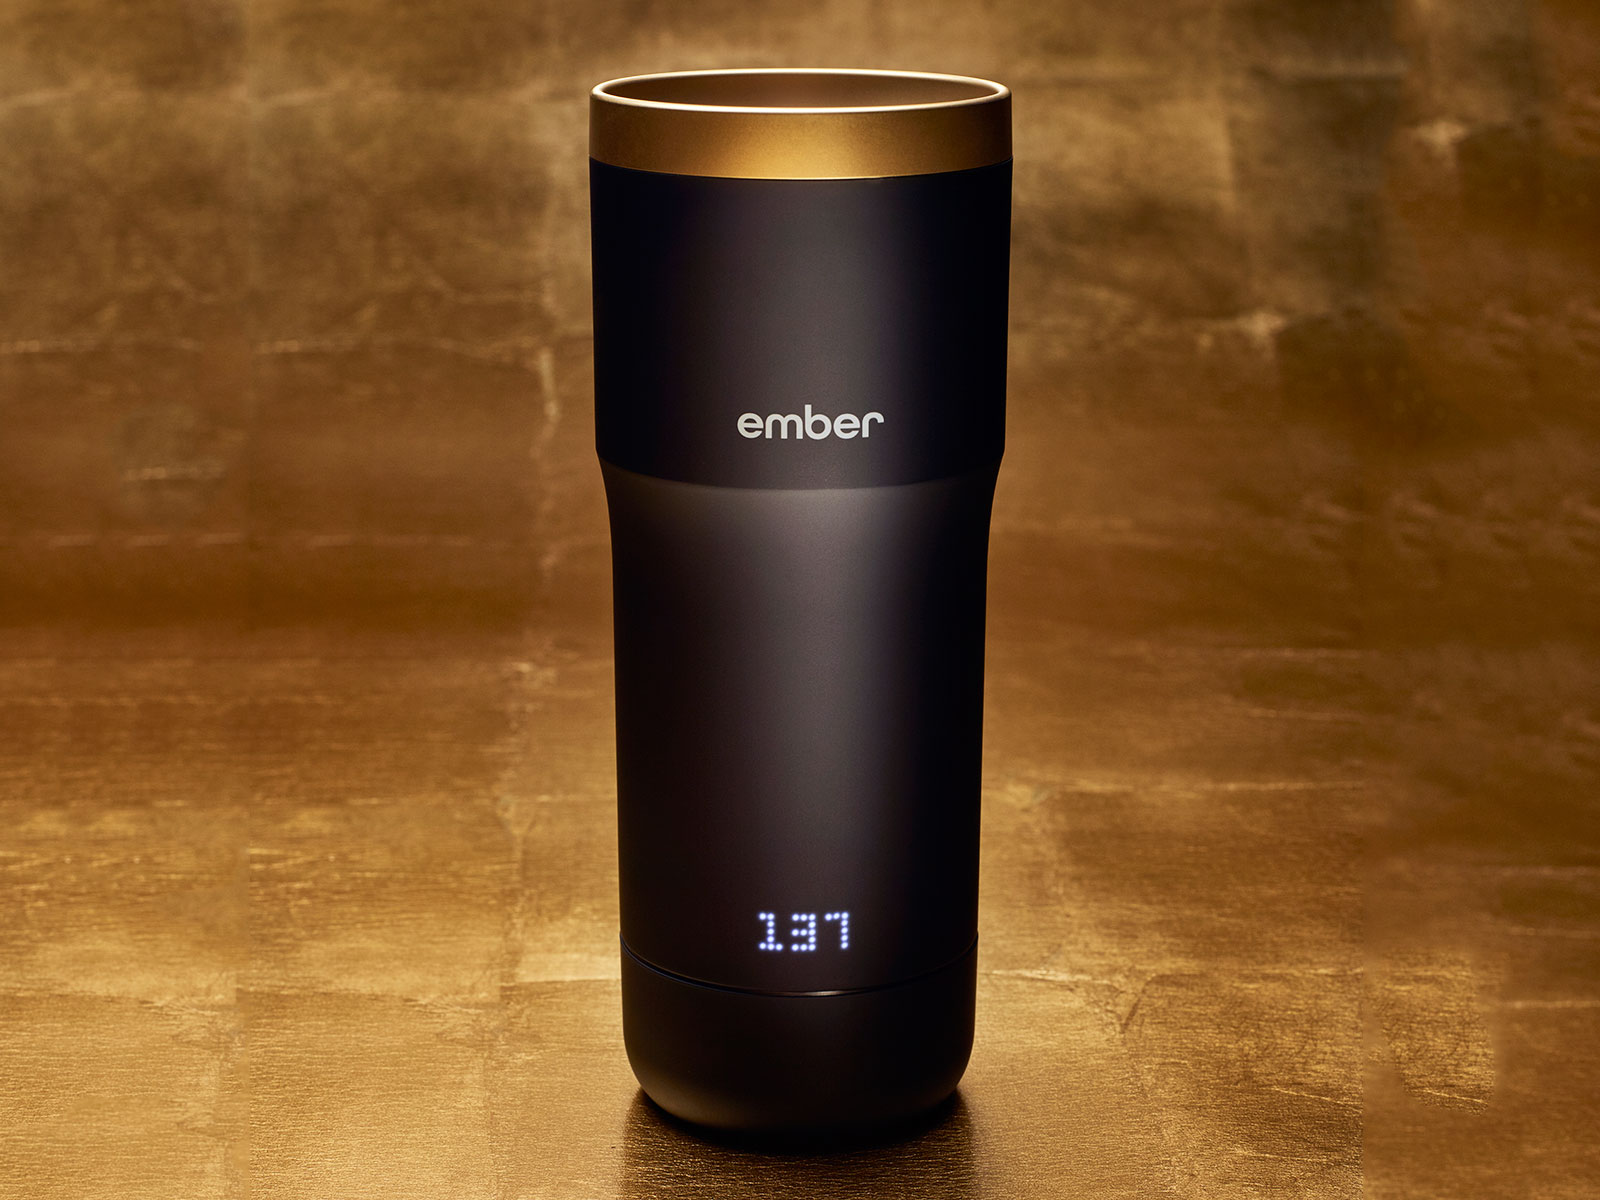 24k gold lid from ember